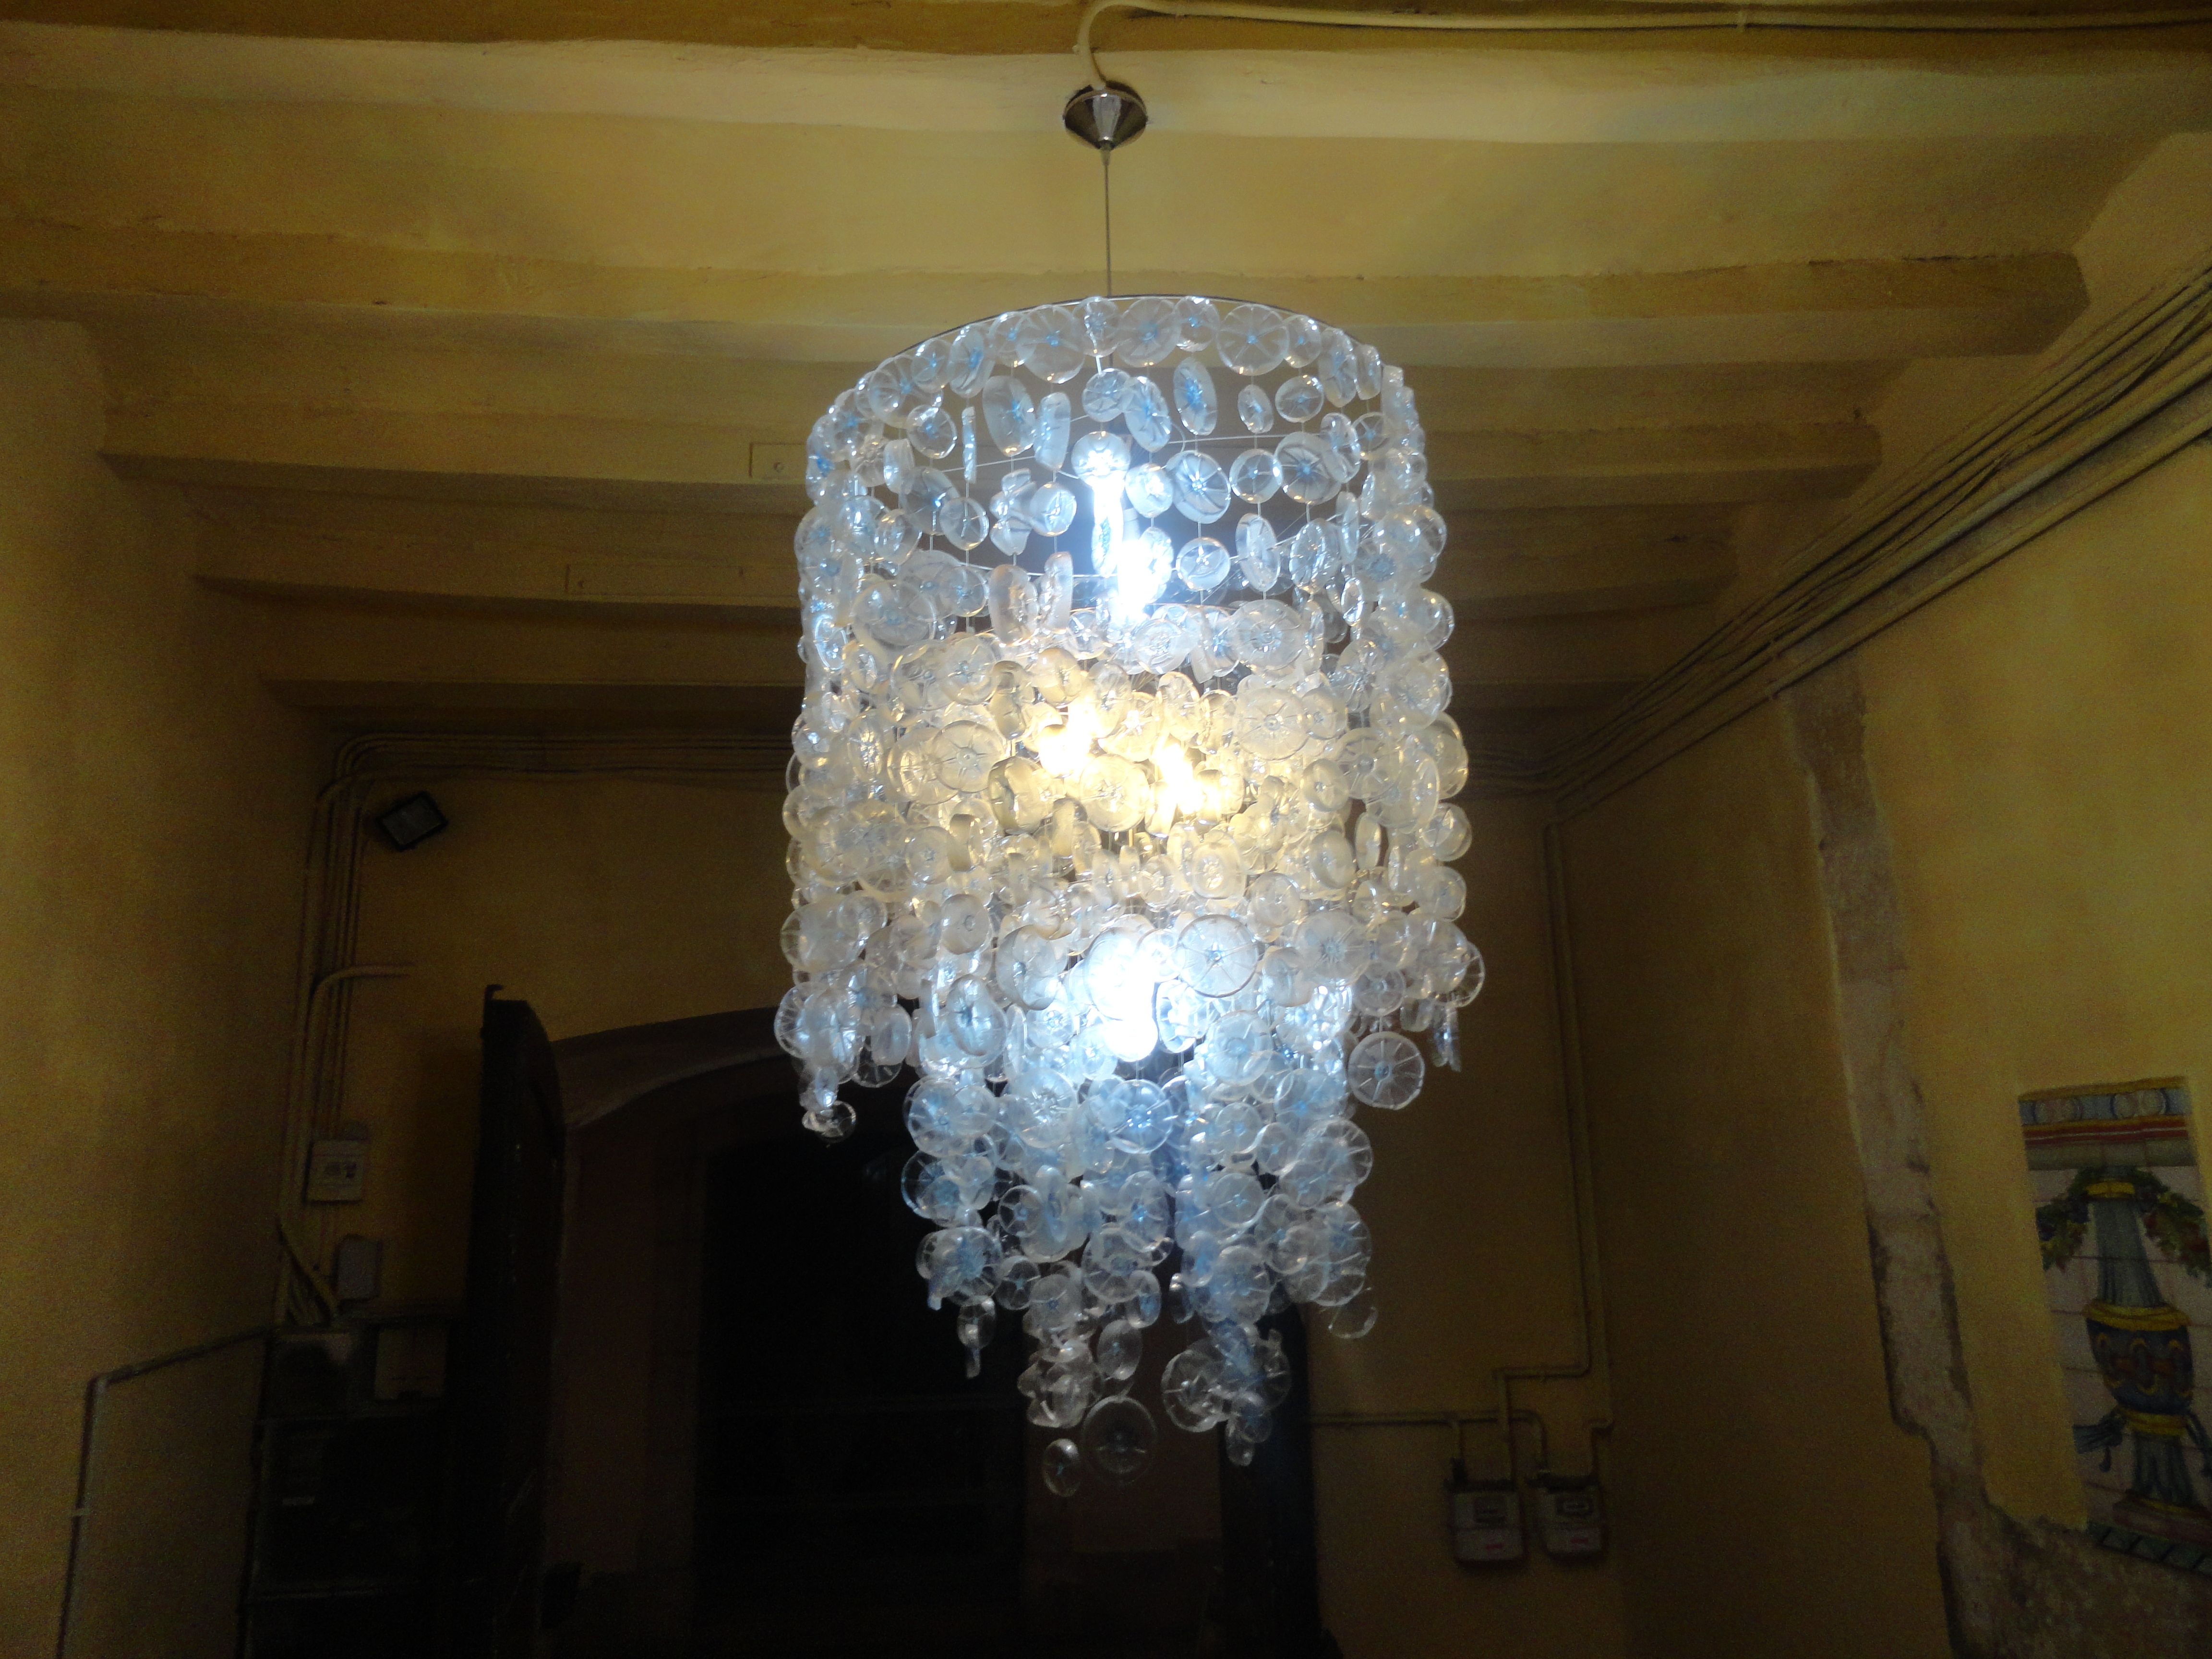 Recycled Plastic Bottle Lamp Lamp Shade Made Out Of Recycled Plastic Bottles In Tarragona